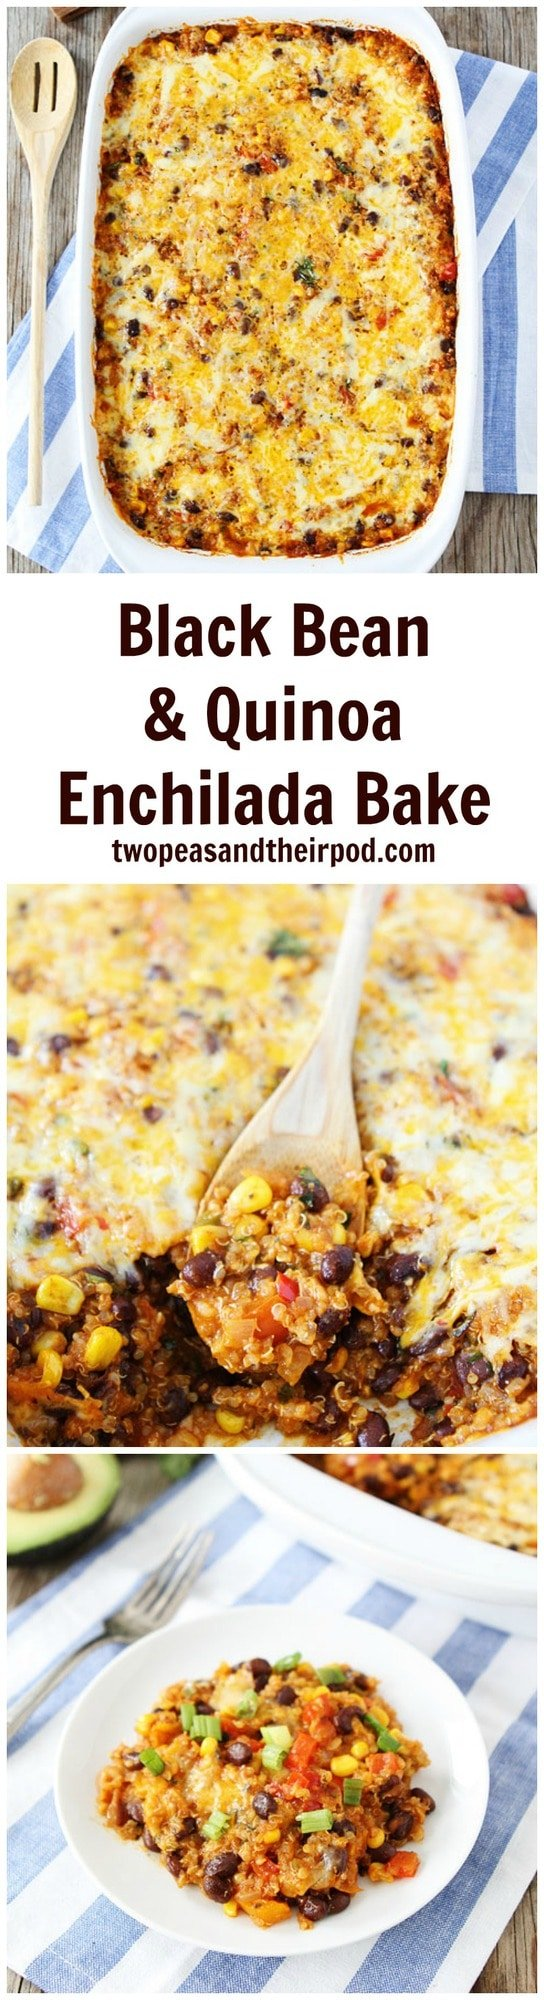 Black Bean Quinoa Enchilada Bake is a family favorite dinner. Even the kids LOVE this quinoa casserole. Bonus-it freezes well too! #vegetarian #glutenfree #quinoa #dinner Visit twopeasandtheirpod.com for more simple, fresh, and family friendly meals.